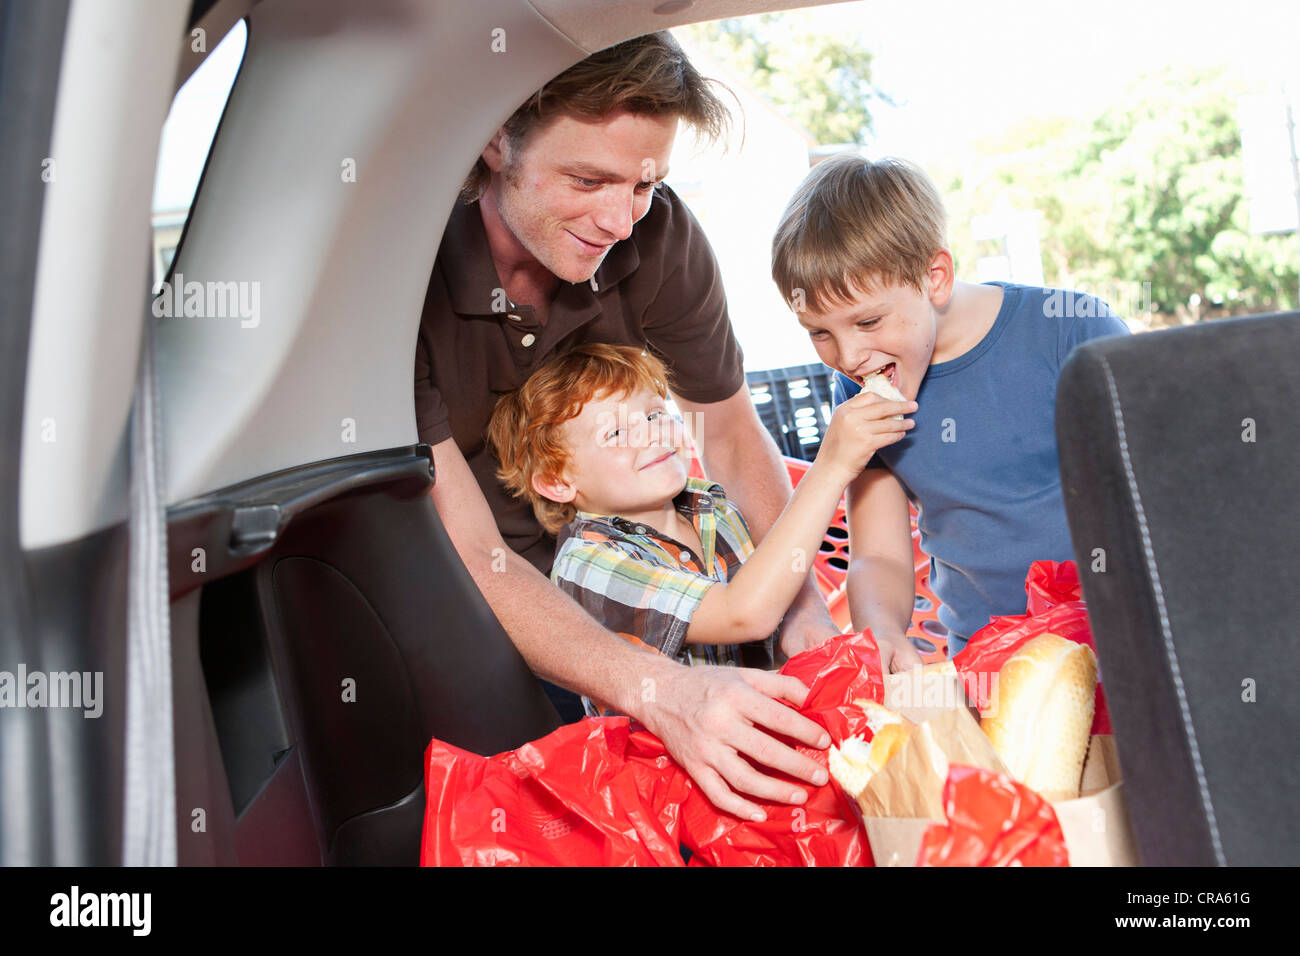 Boys eating groceries in trunk of car Stock Photo